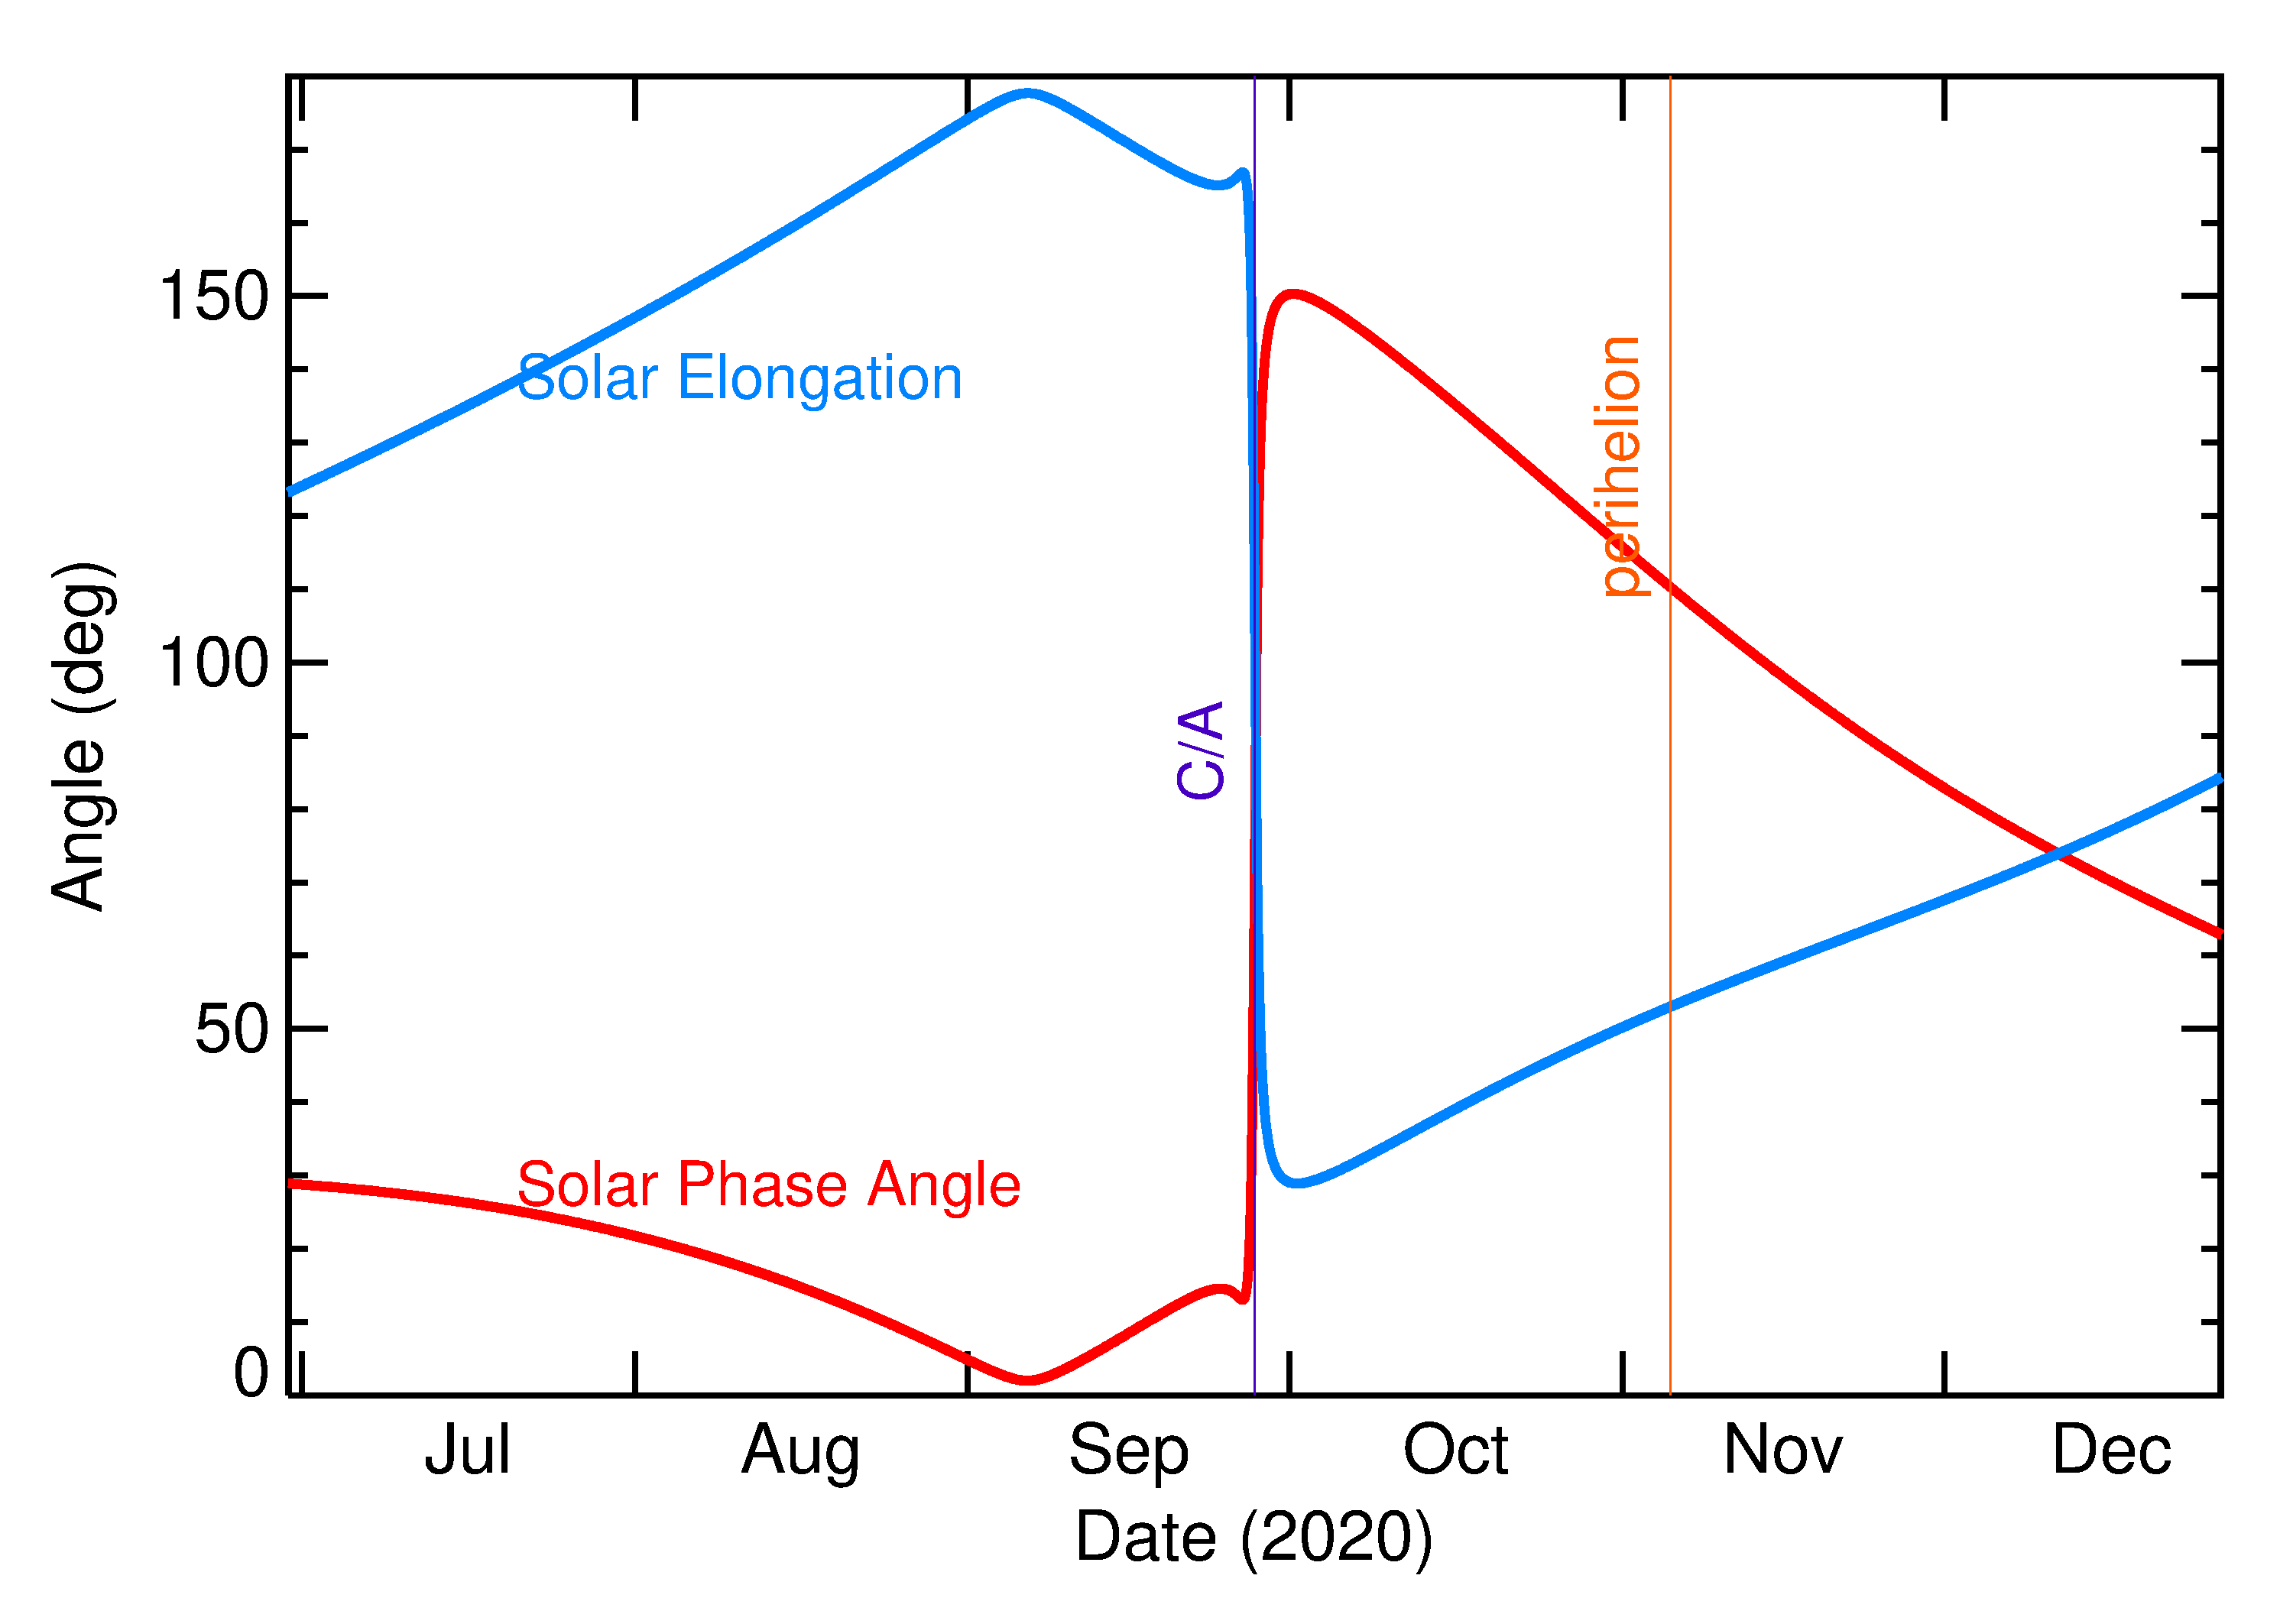 Solar Elongation and Solar Phase Angle of 2020 SQ4 in the months around closest approach